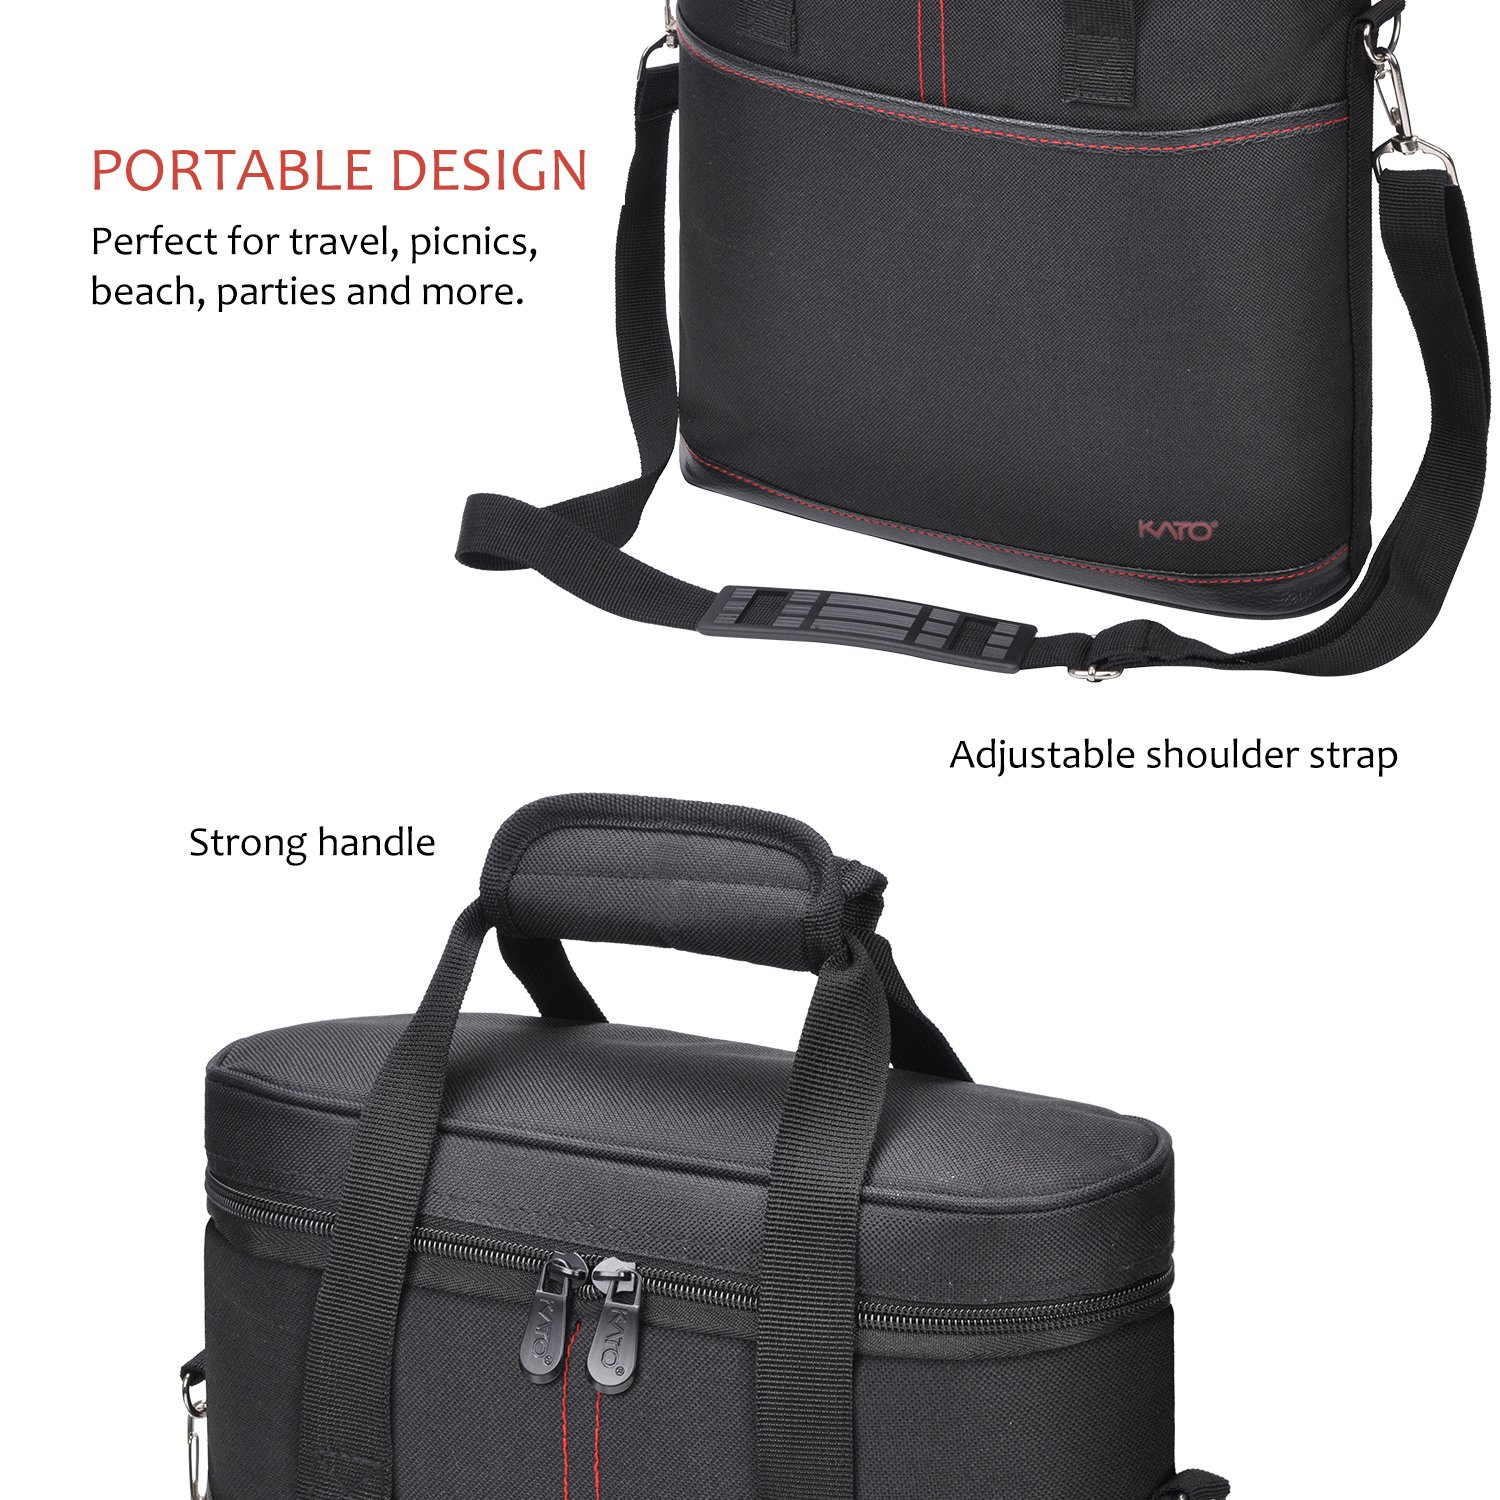 Tirrinia Insulated Wine Carrier - 3 Bottle Travel Padded Wine Carry Cooler Tote Bag with Handle and Adjustable Shoulder Strap + Free Corkscrew, Black by Tirrinia (Image #4)